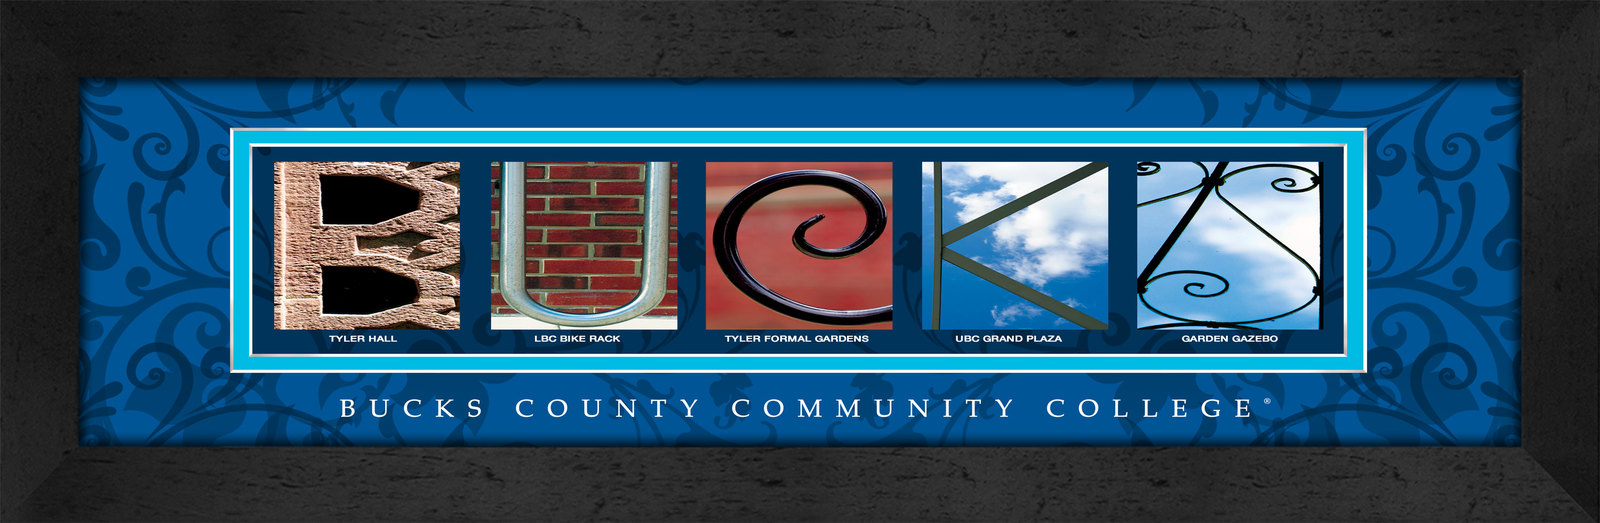 Primary image for Bucks County Community College Officially Licensed Framed Campus Letter Art